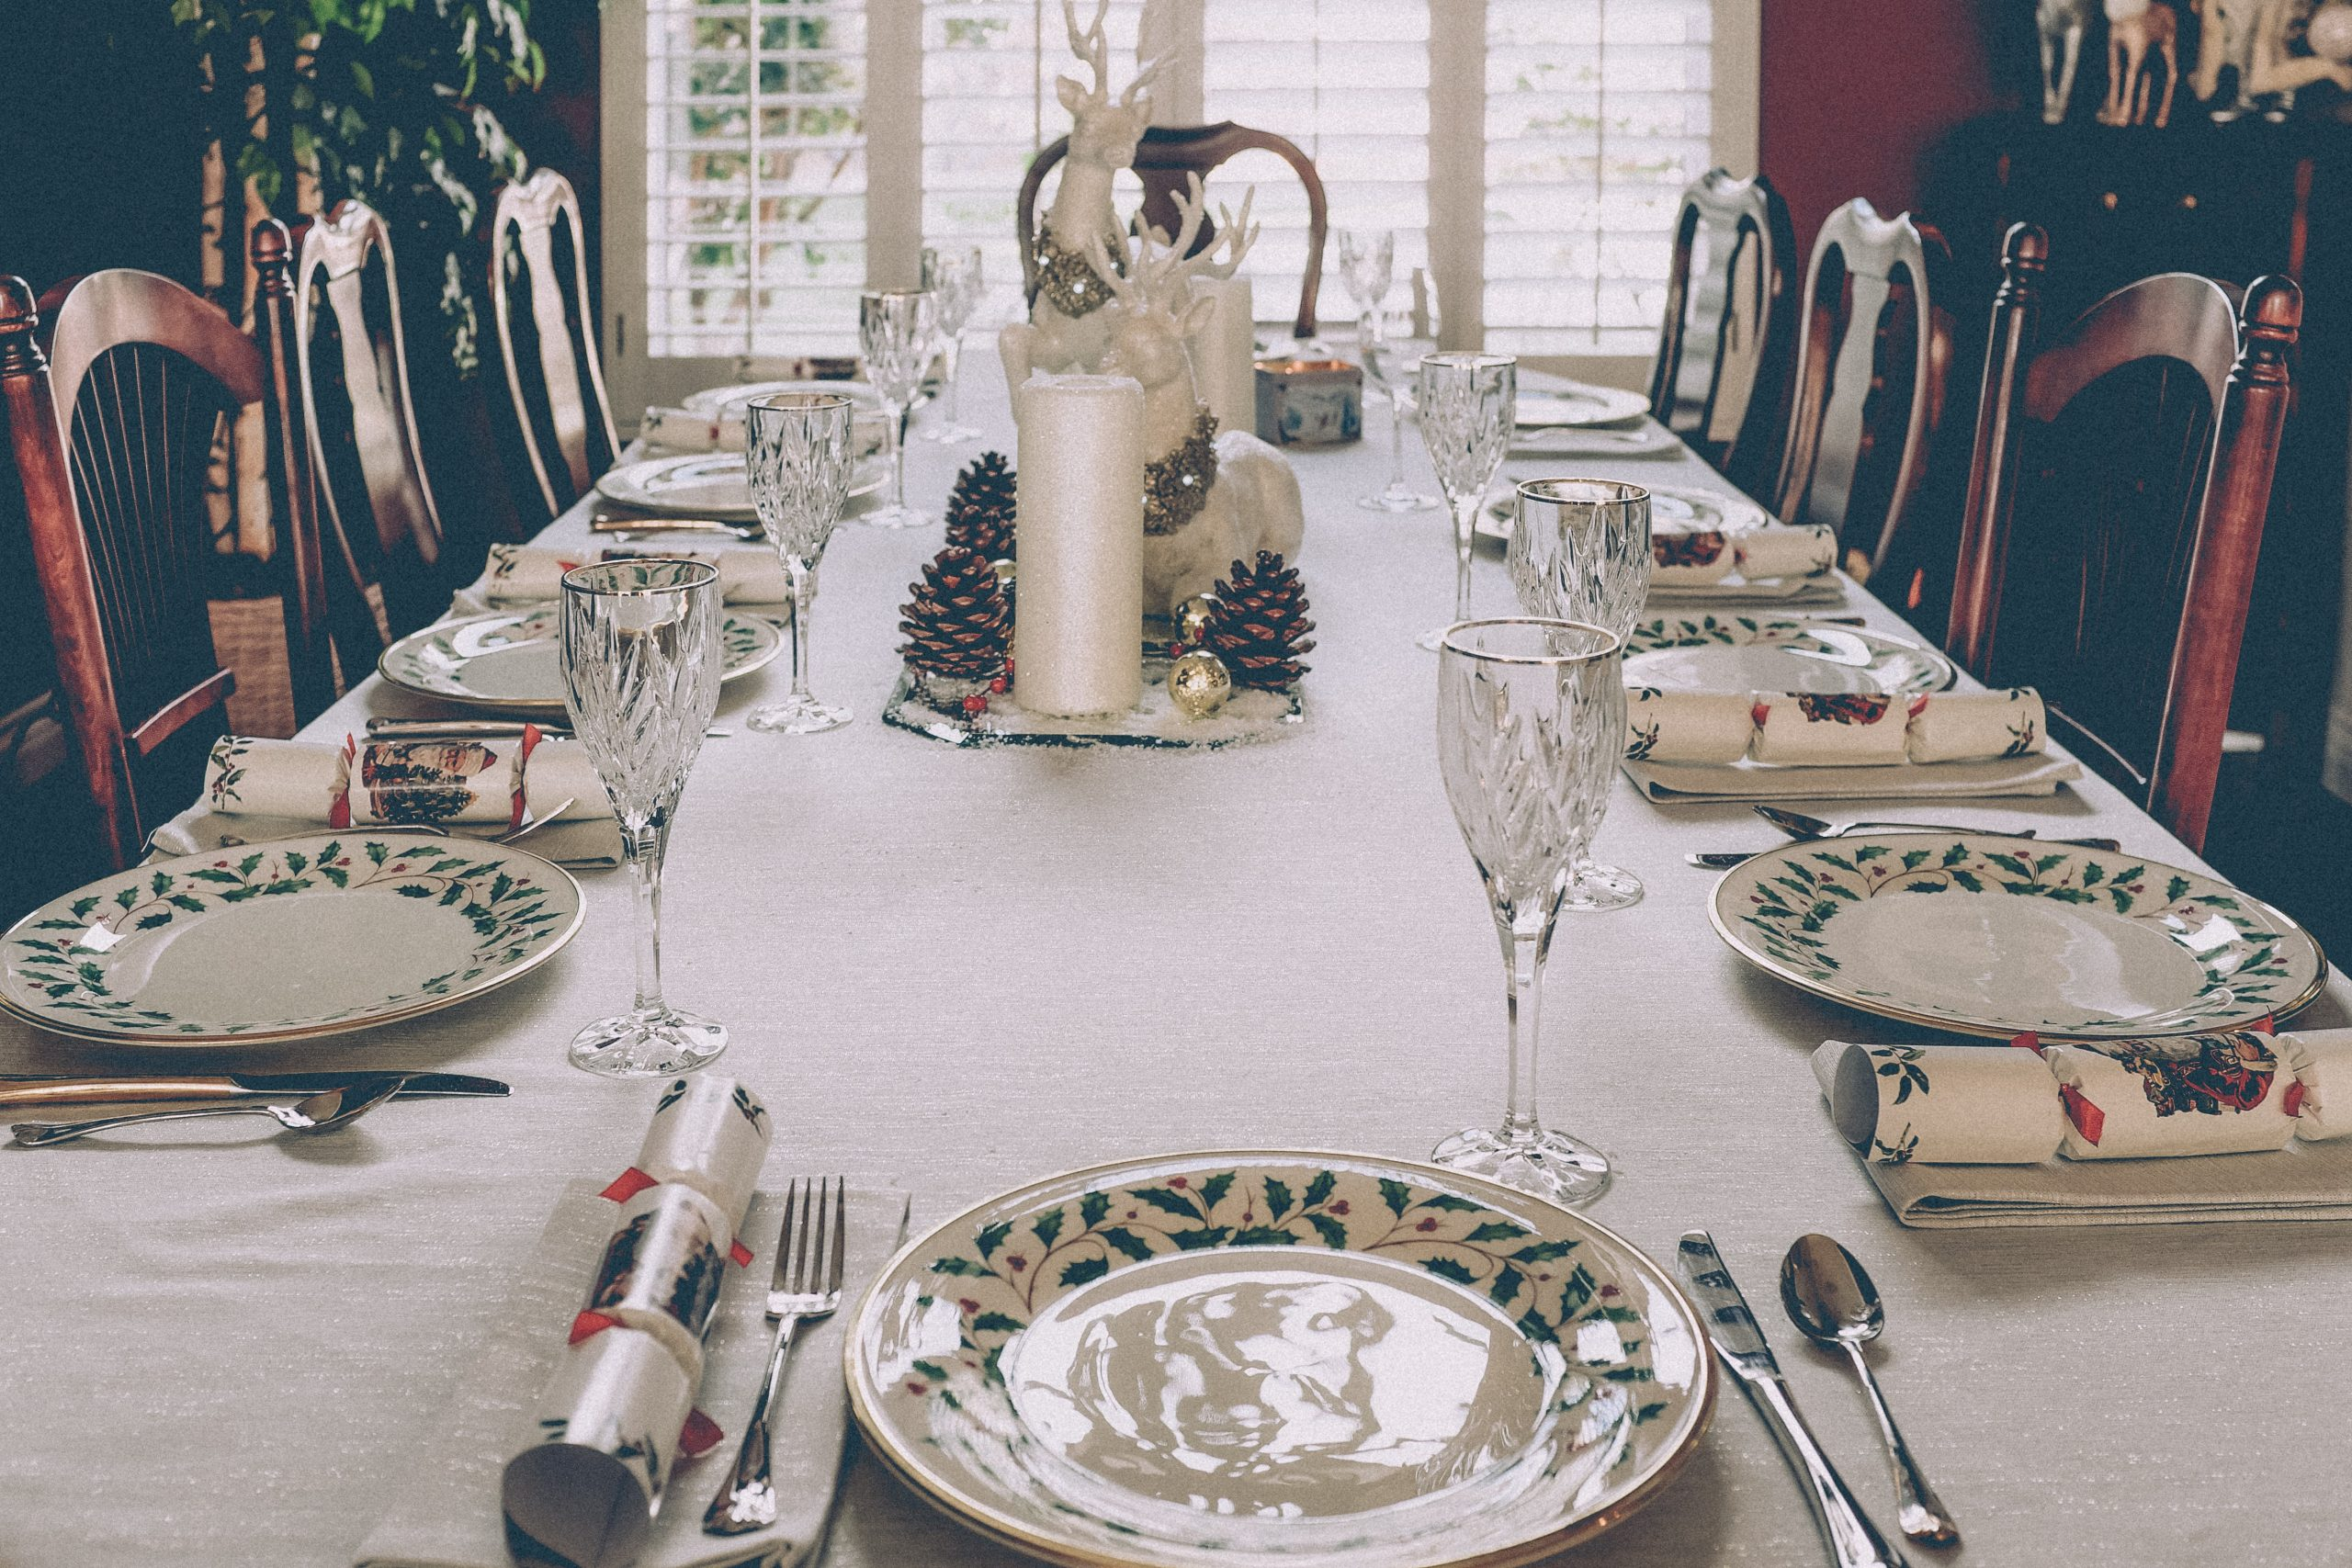 A winter-themed dinner table at a wedding with arranged cutlery and a centerpiece.